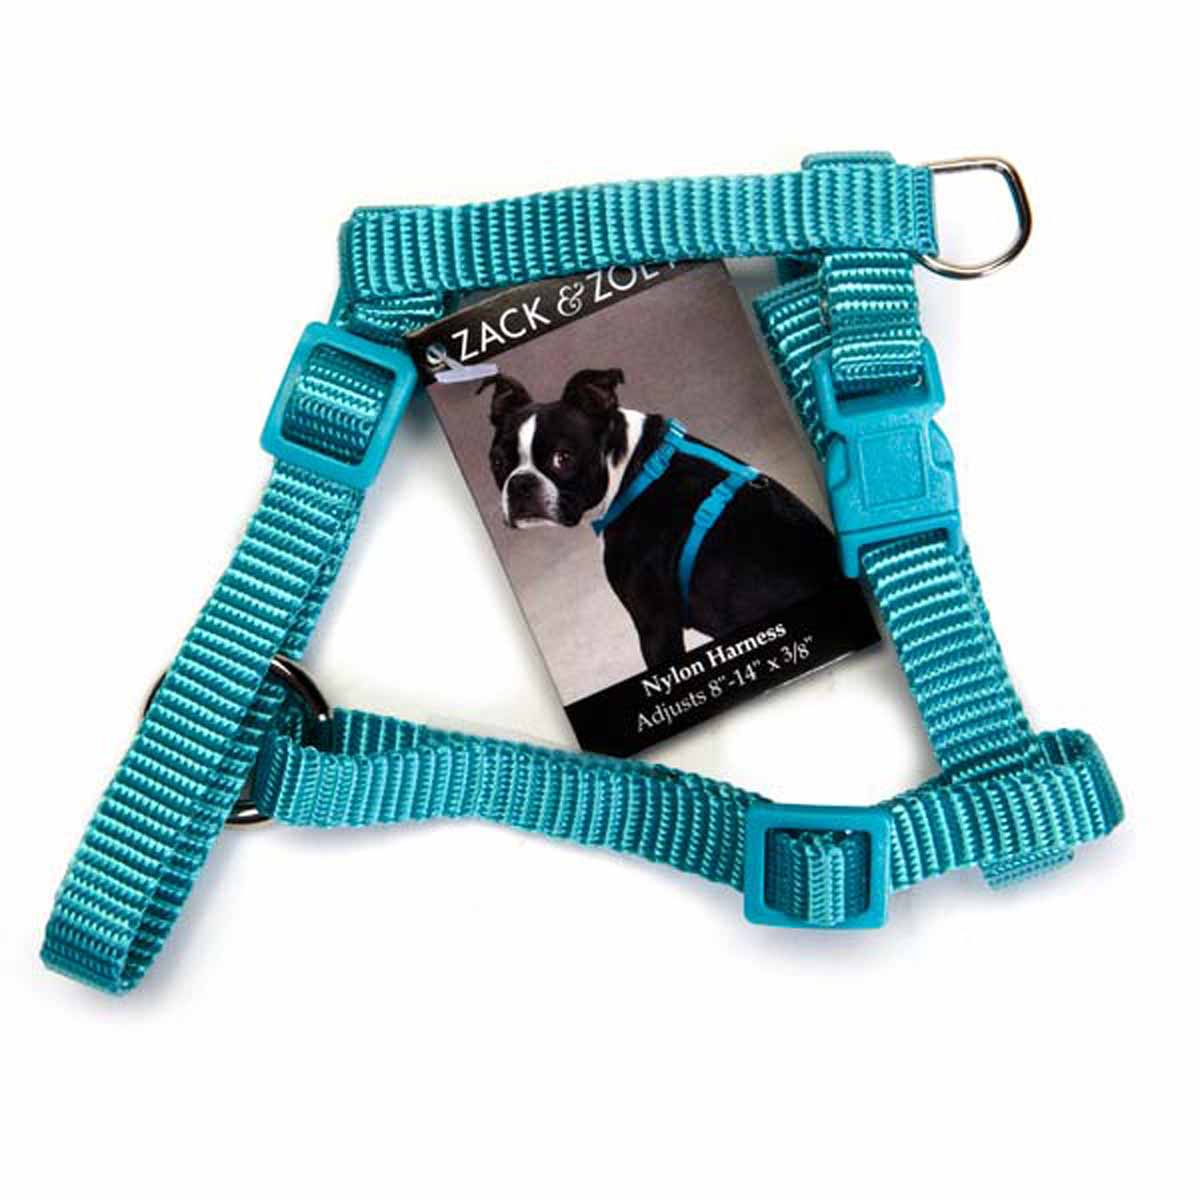 Nylon Harness by Zack & Zoey - Bluebird